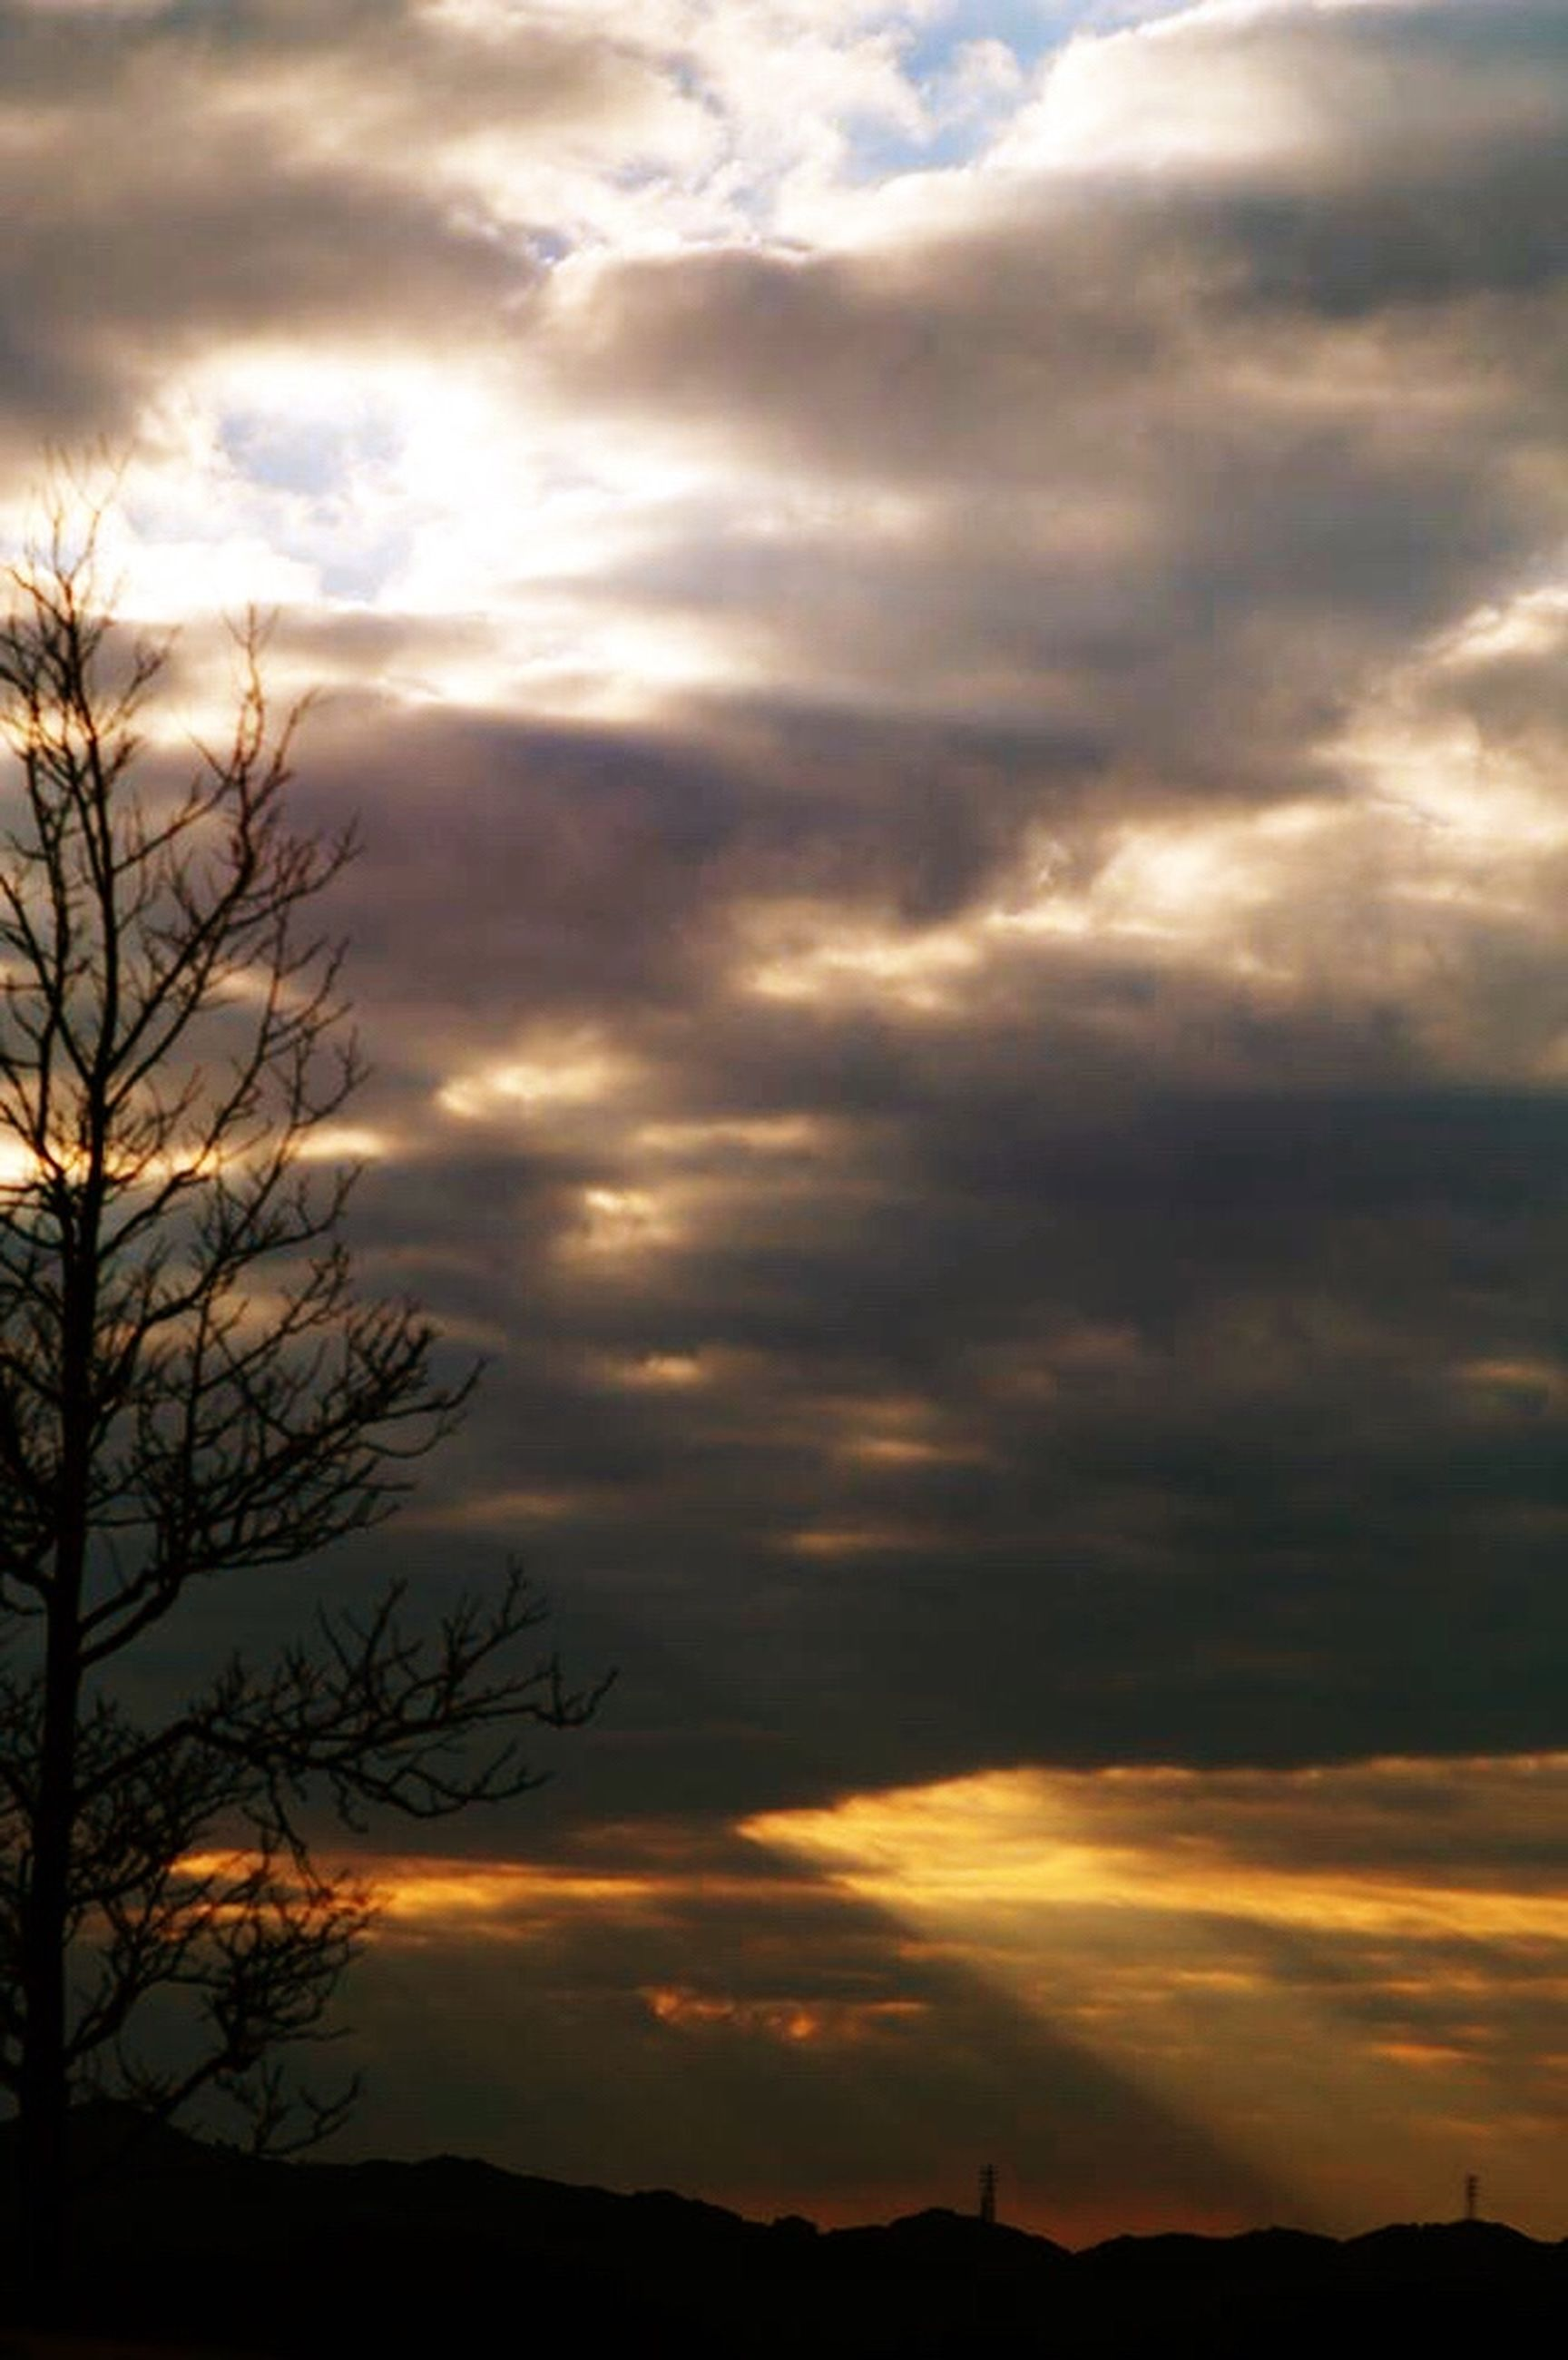 sunset, silhouette, sky, tranquil scene, scenics, cloud - sky, tranquility, beauty in nature, dramatic sky, cloudy, landscape, tree, nature, cloud, bare tree, idyllic, orange color, weather, moody sky, overcast